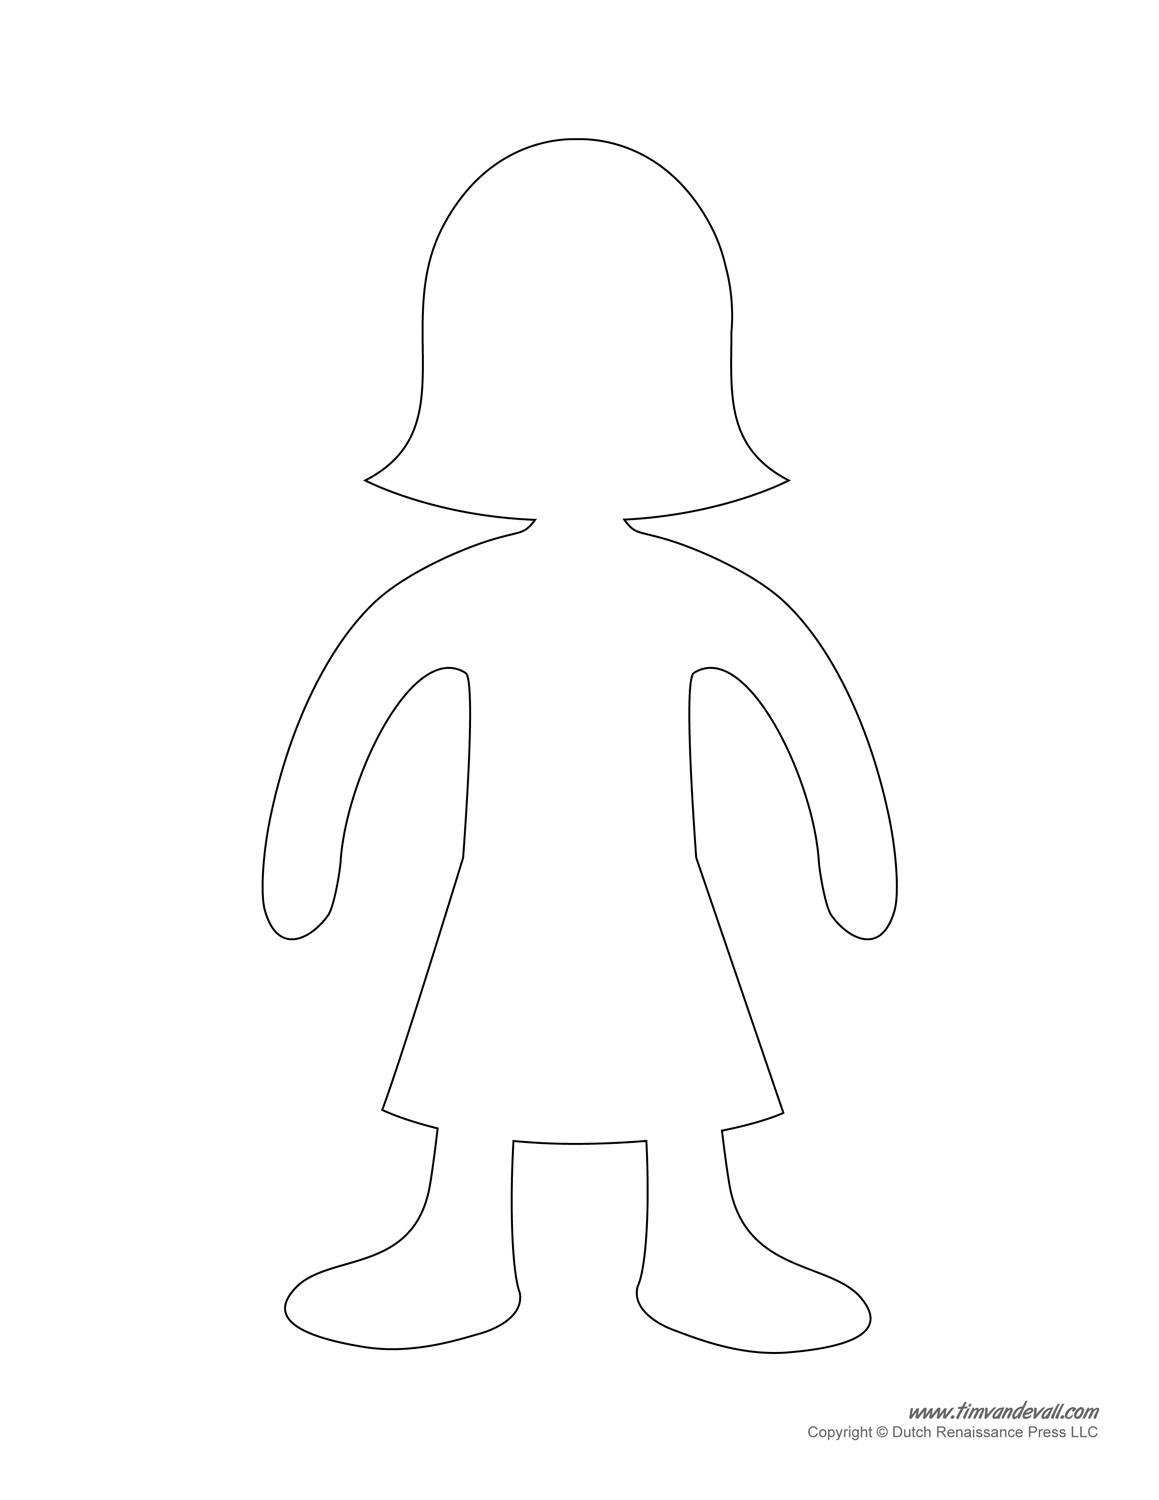 paper doll templates cut out - tim van de vall comics printables for kids